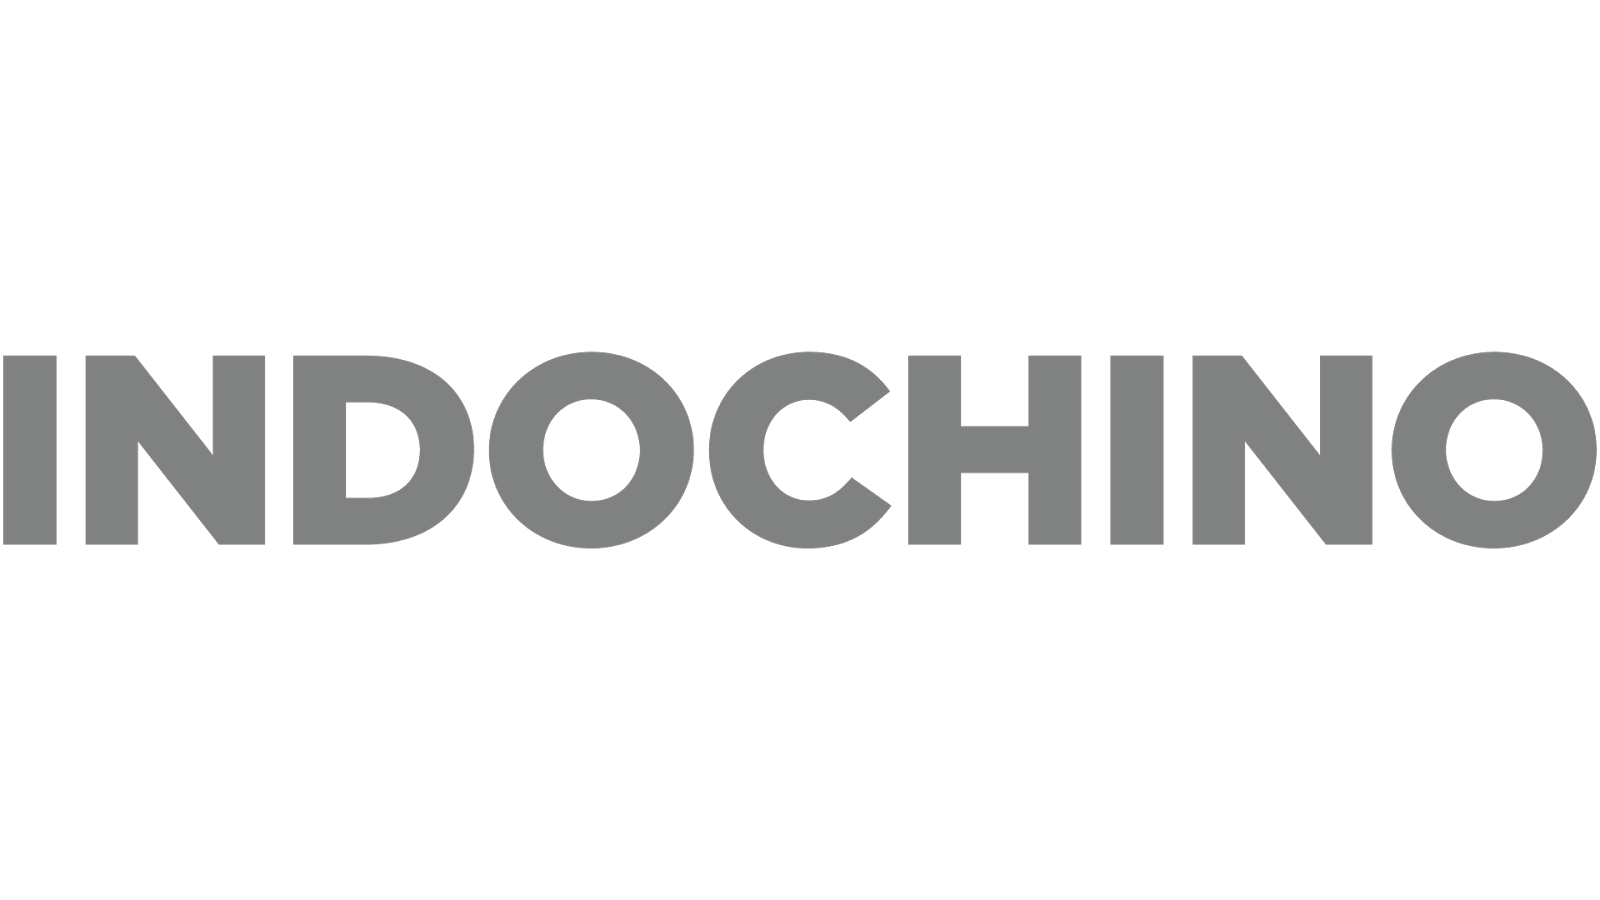 indochino-logo.png